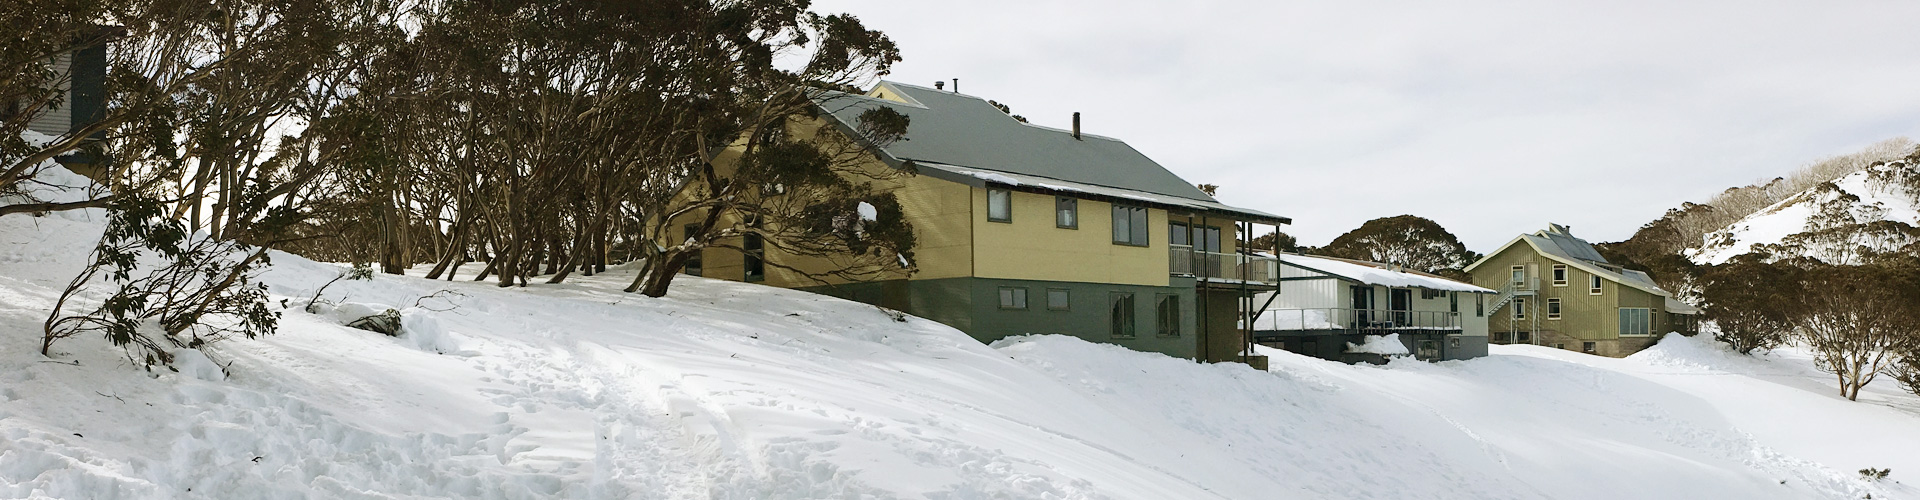 arrabri ski club hotham accommodation